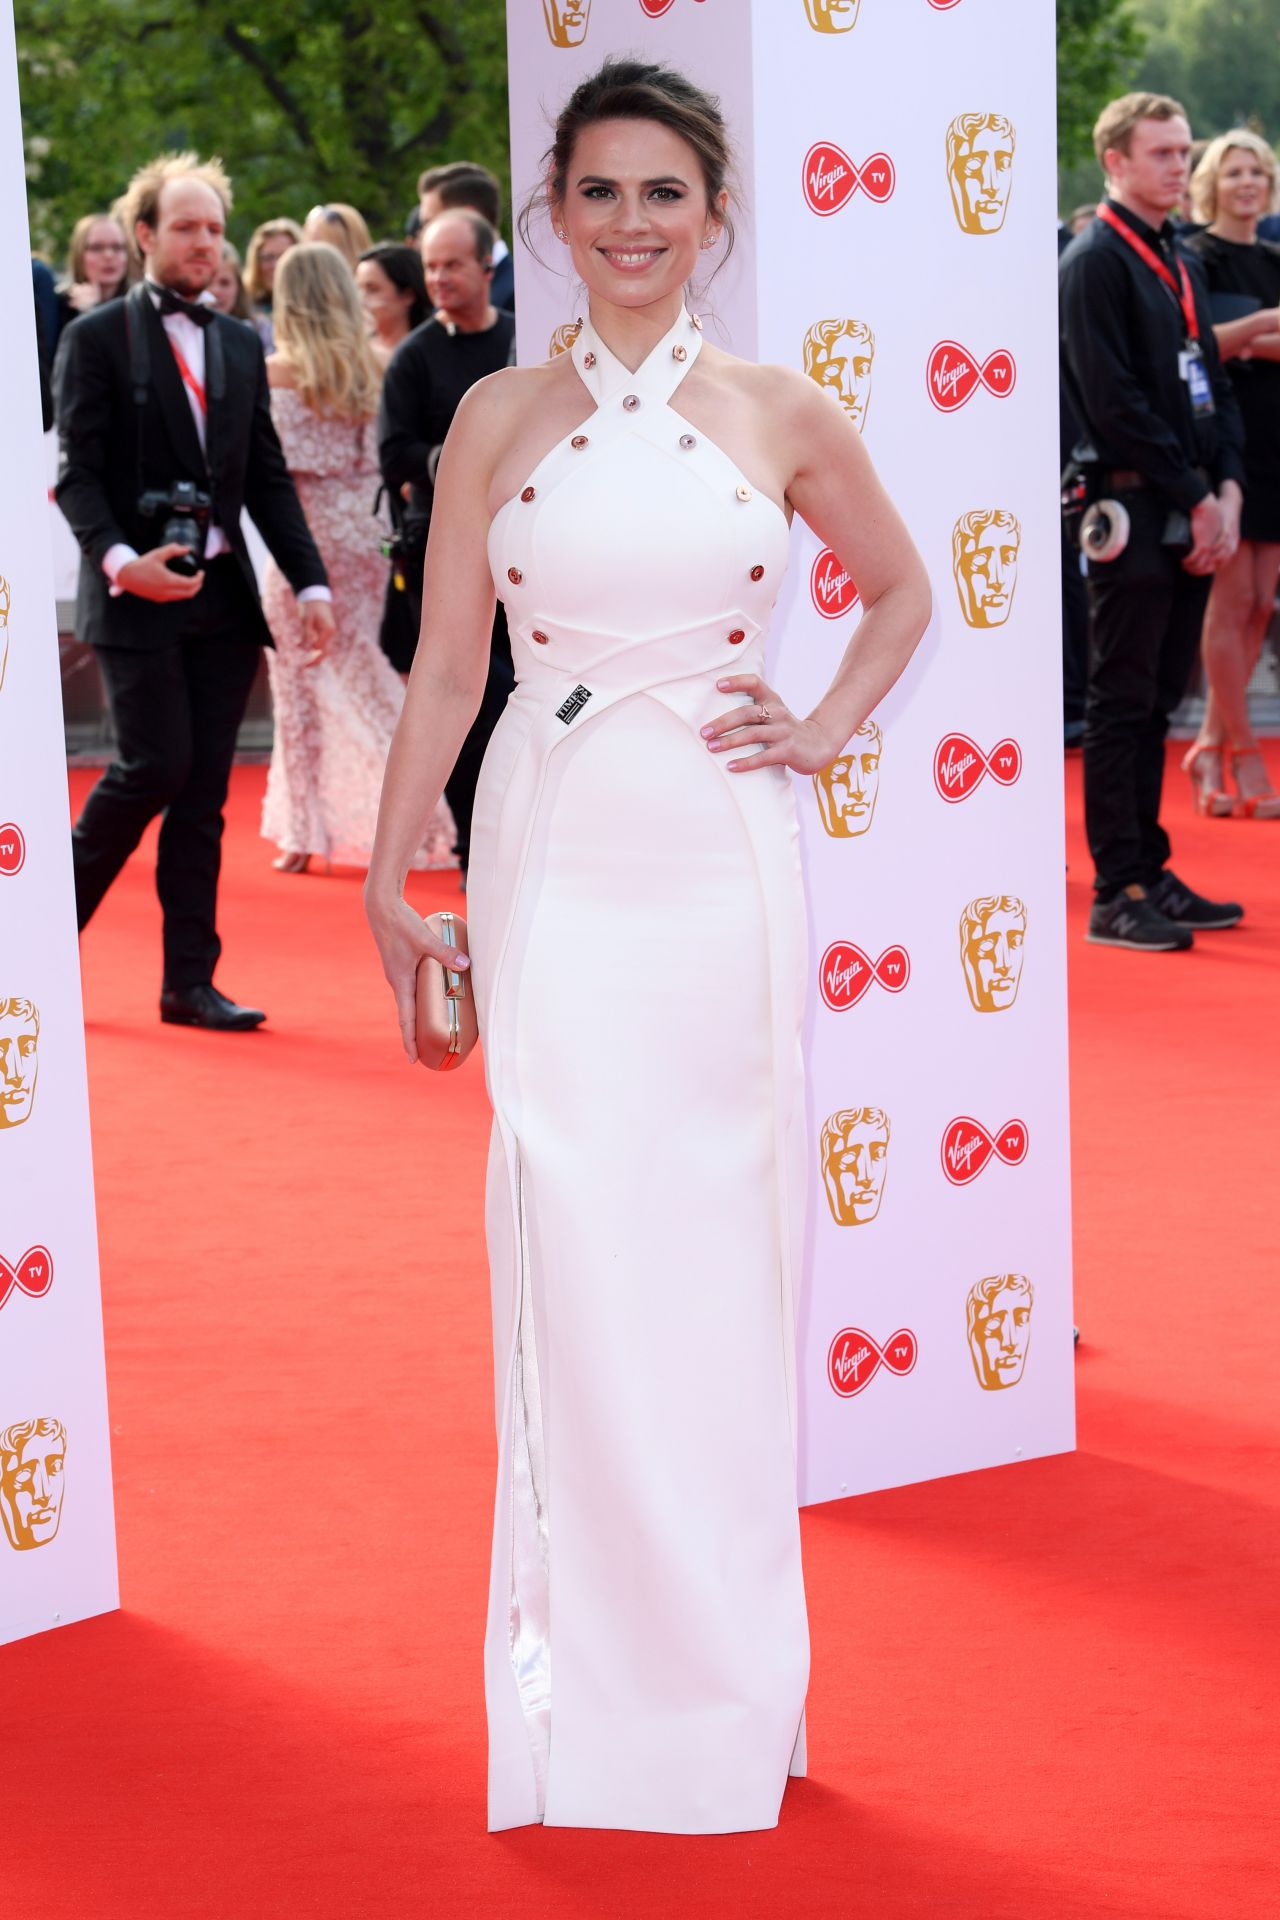 http://celebmafia.com/wp-content/uploads/2018/05/hayley-atwell-bafta-tv-awards-2018-in-london-3.jpg